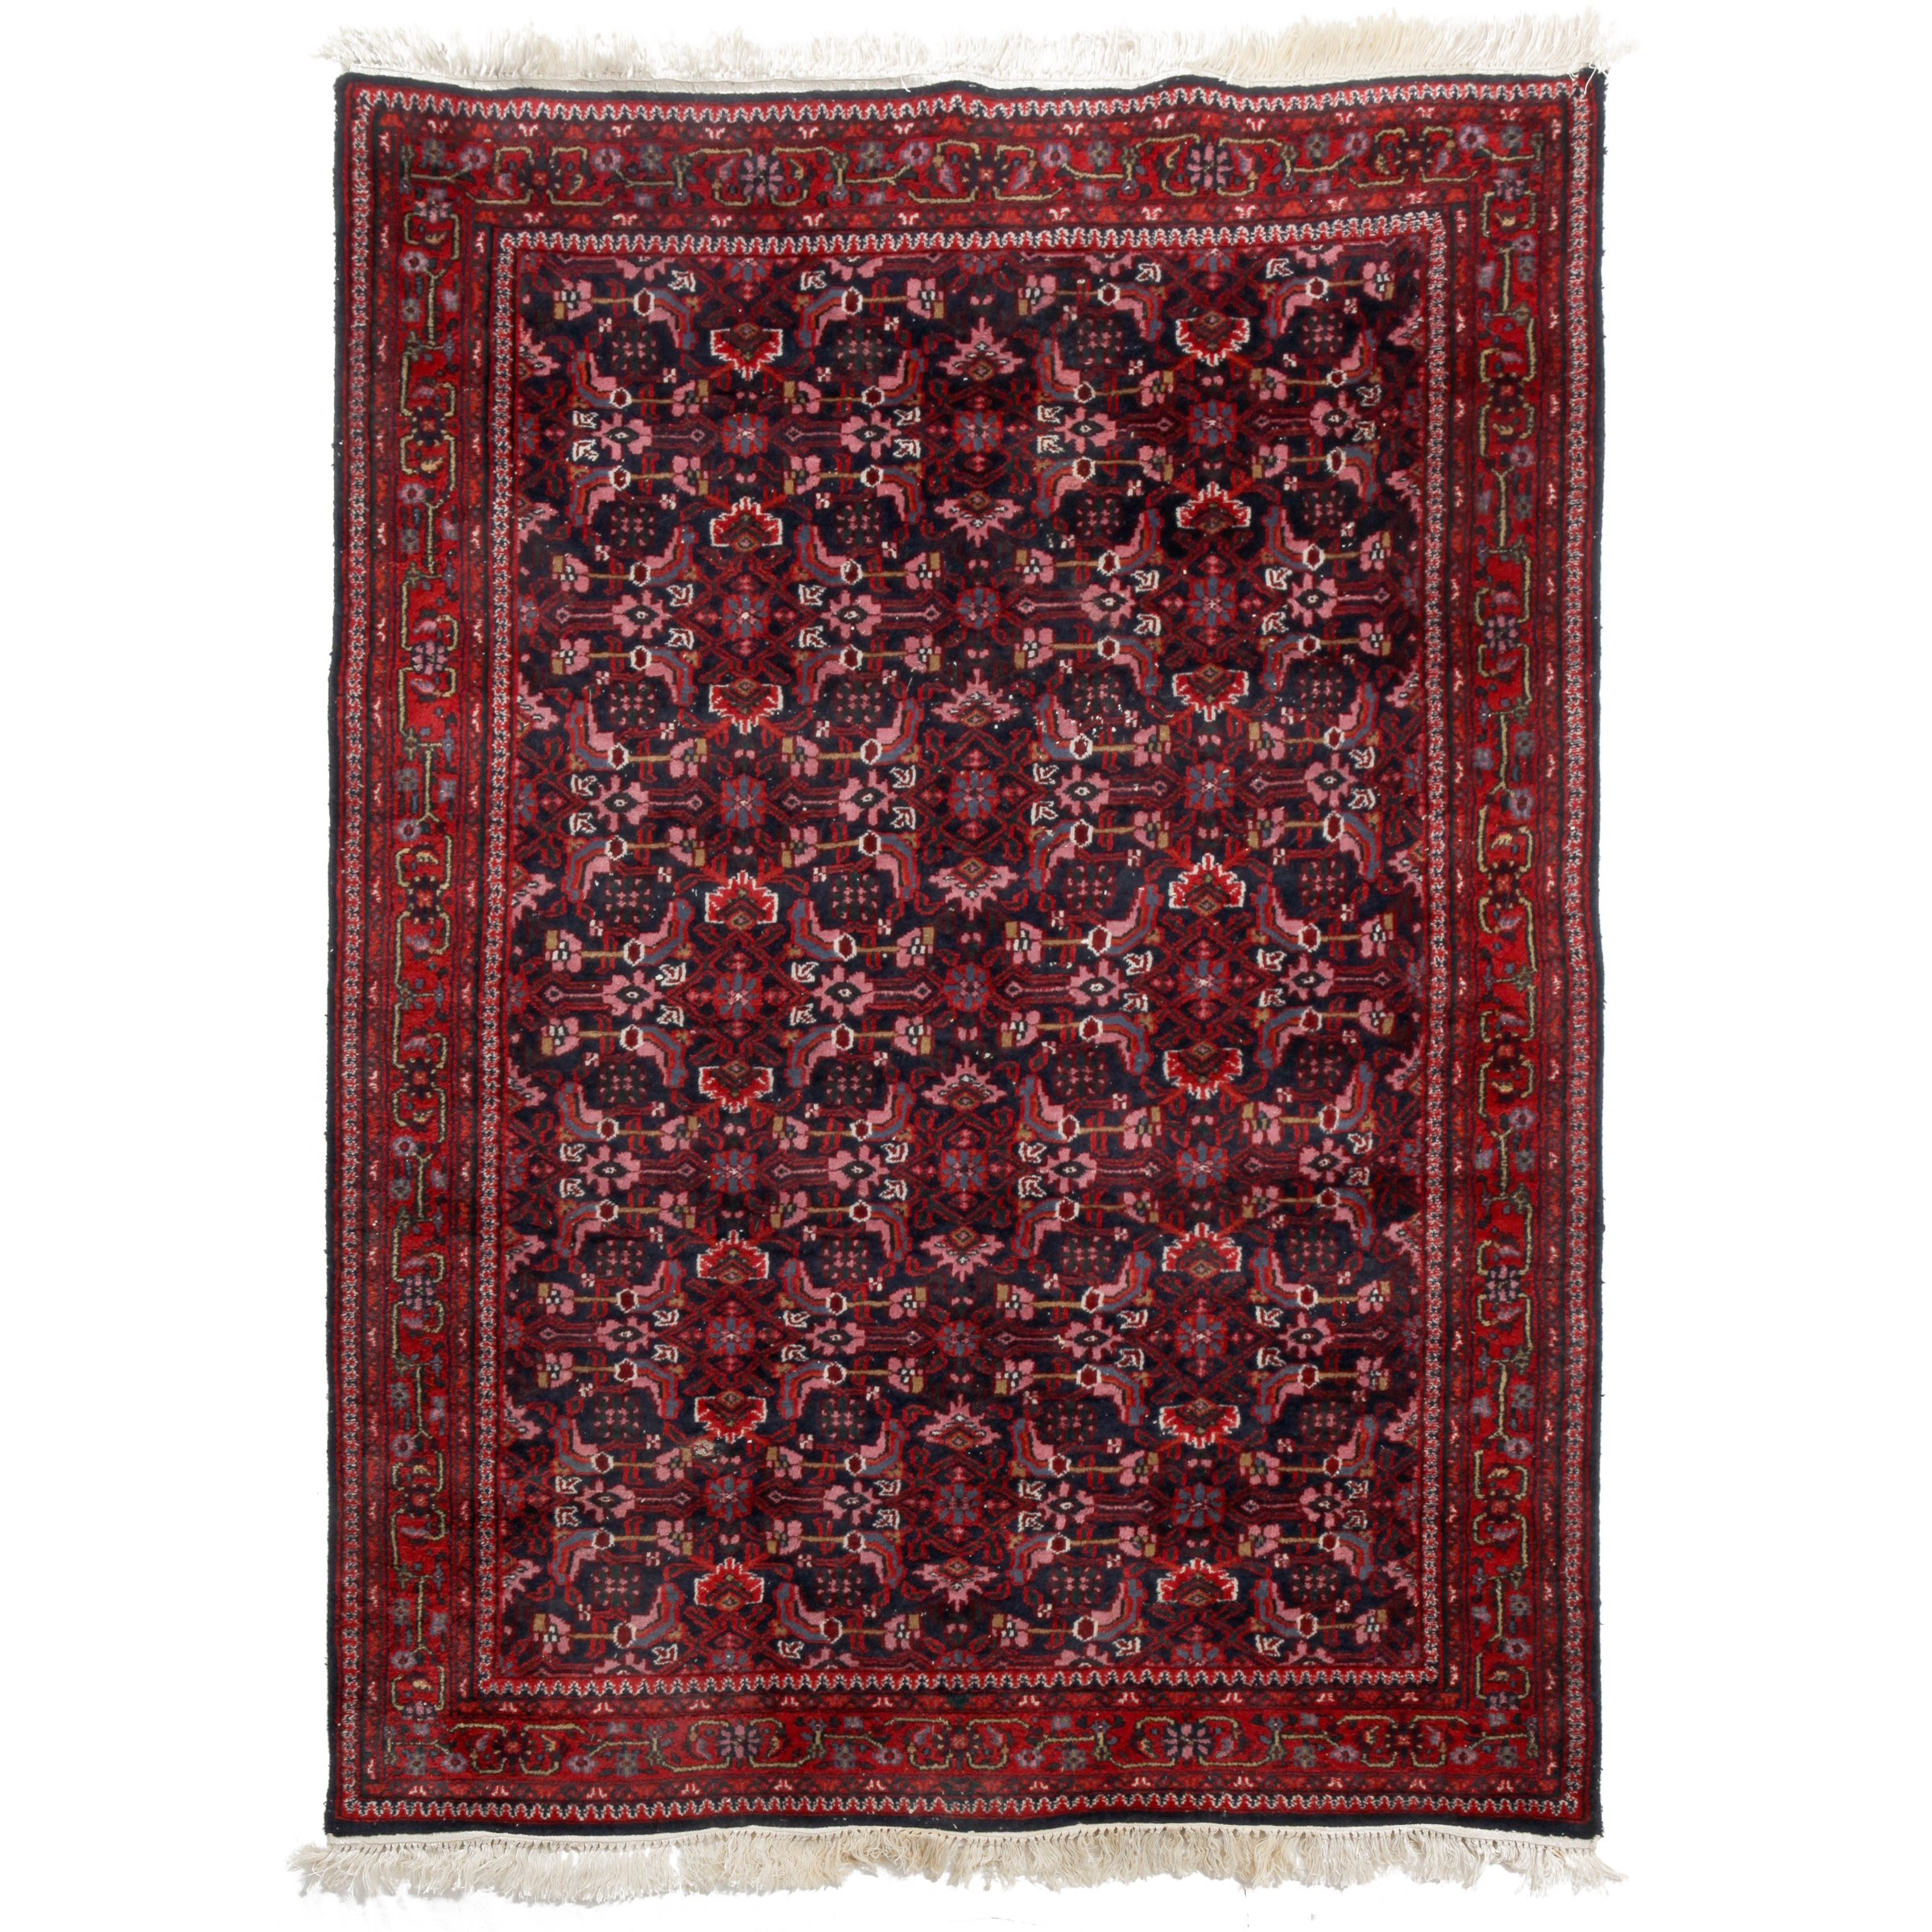 Feraghan Rug, mid to late 20th century